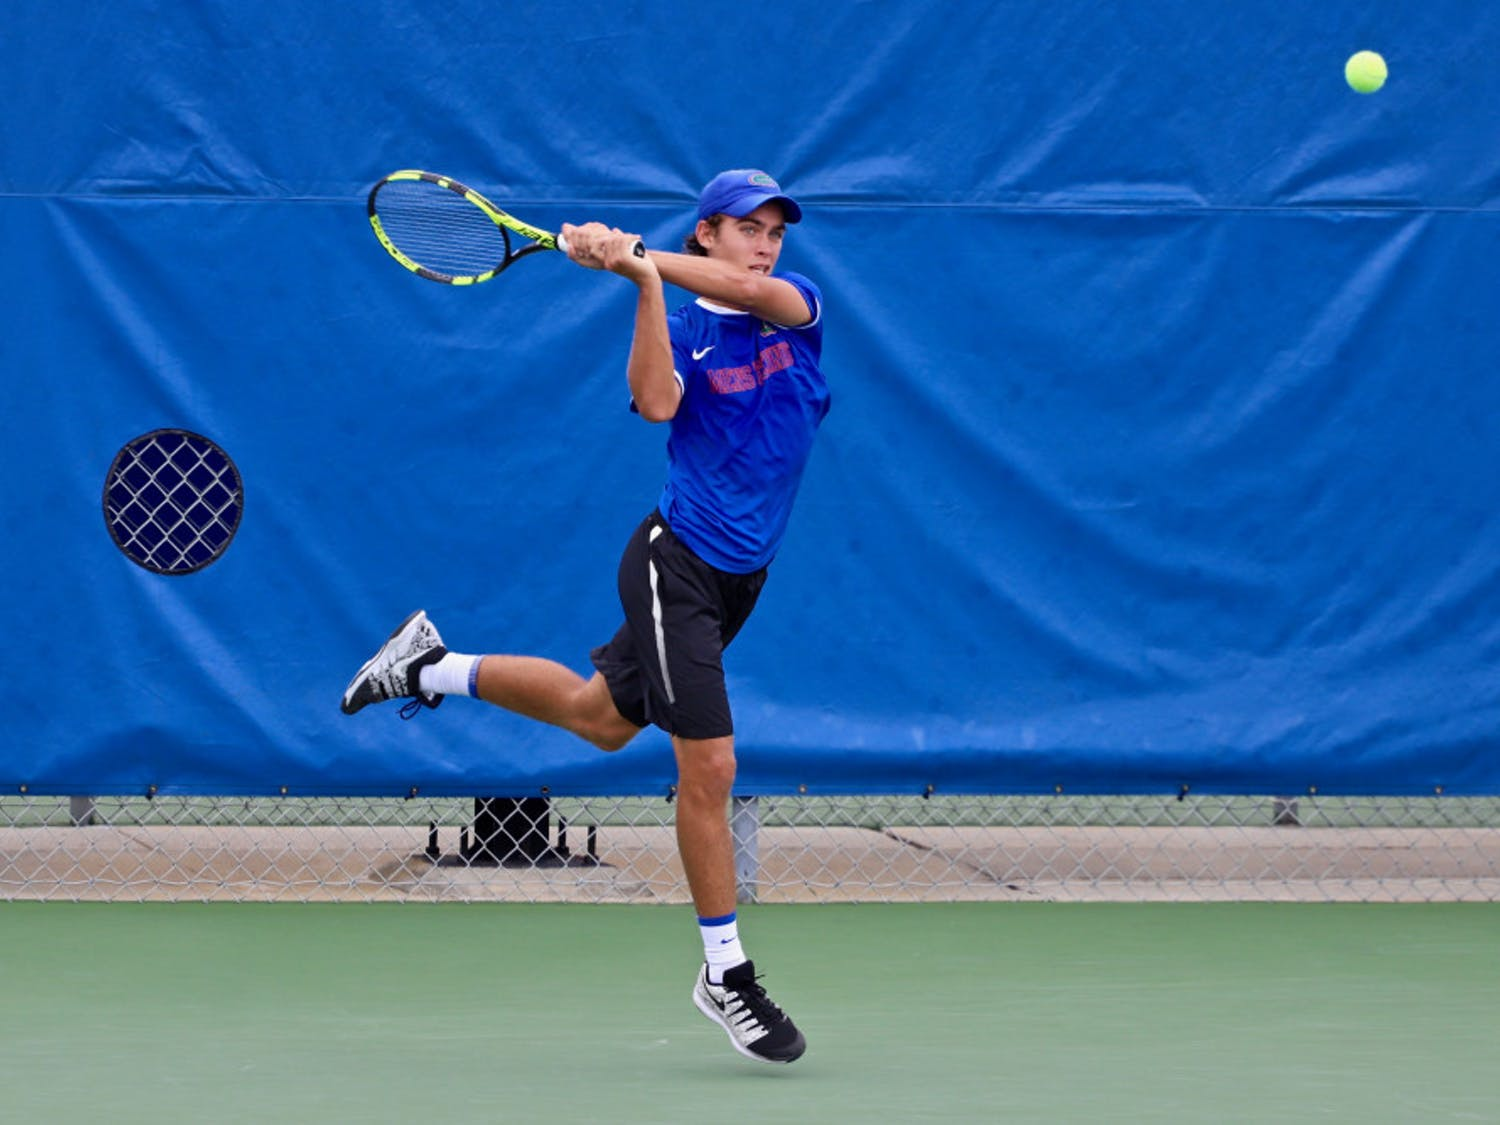 Sophomore Blaise Bicknell won a singles match against Georgia on Friday at the Southern Intercollegiate Championships.